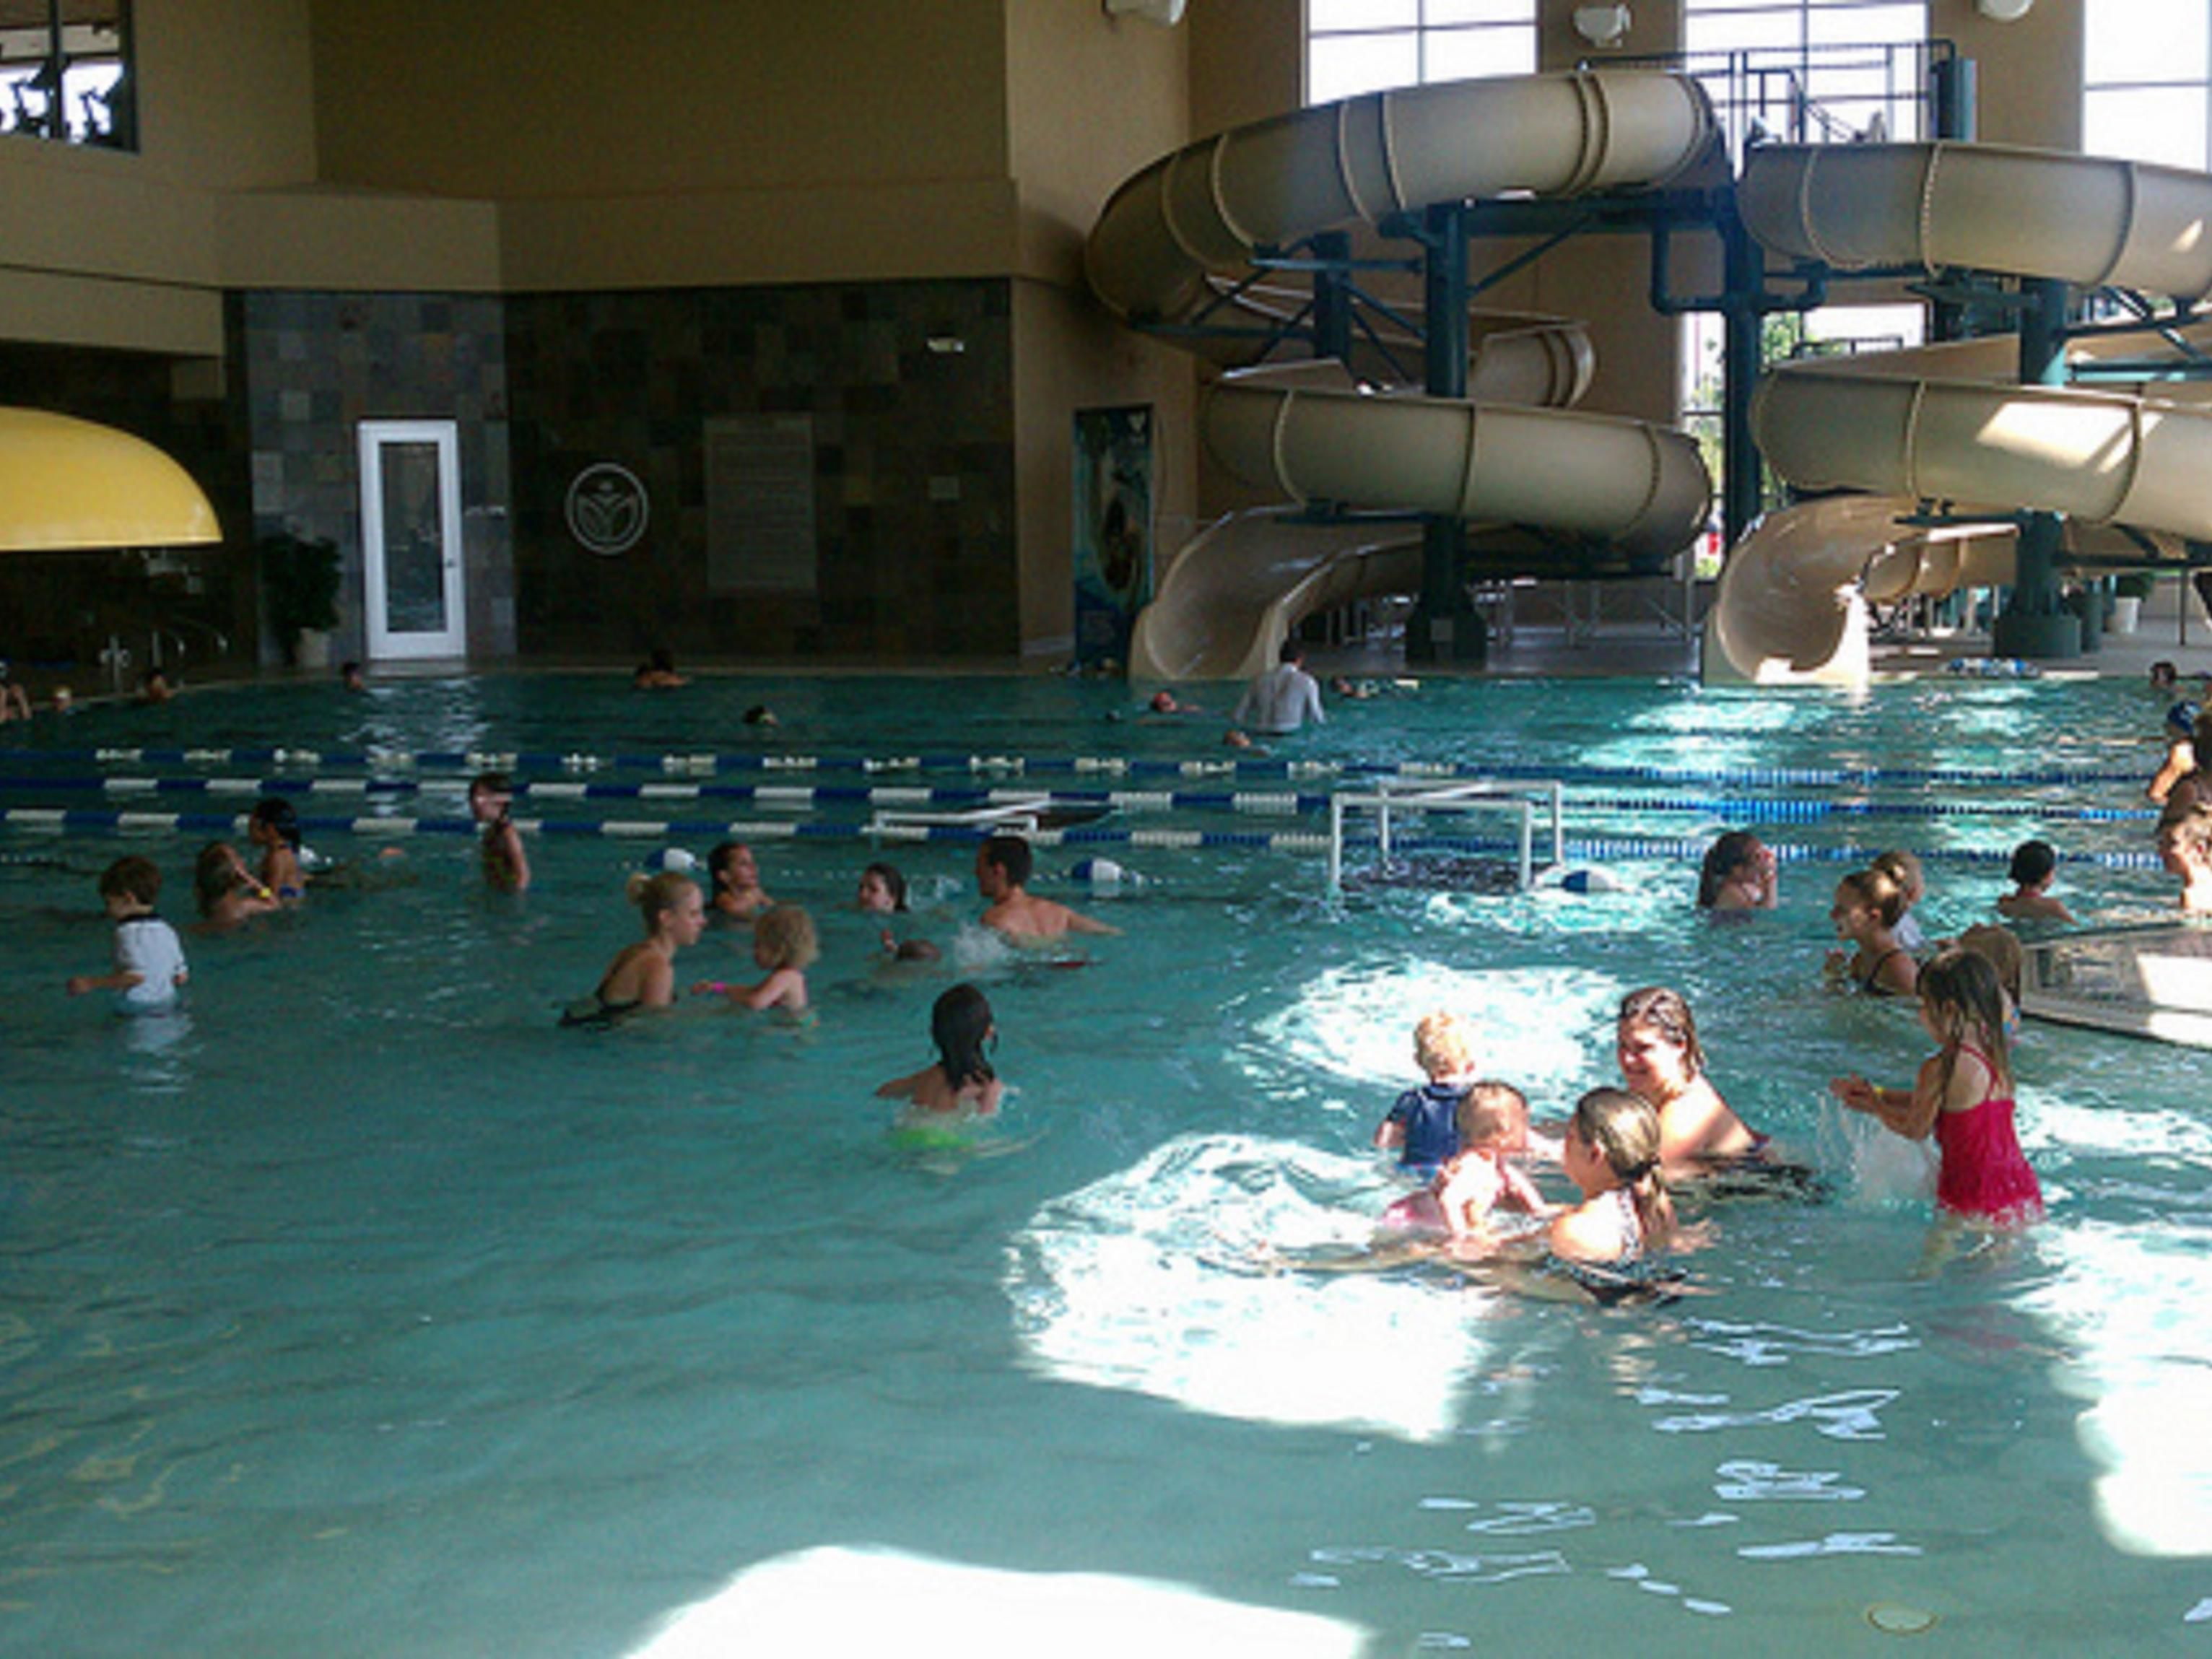 Lifetime Fitness Indoor Pool - located one block West of the hotel